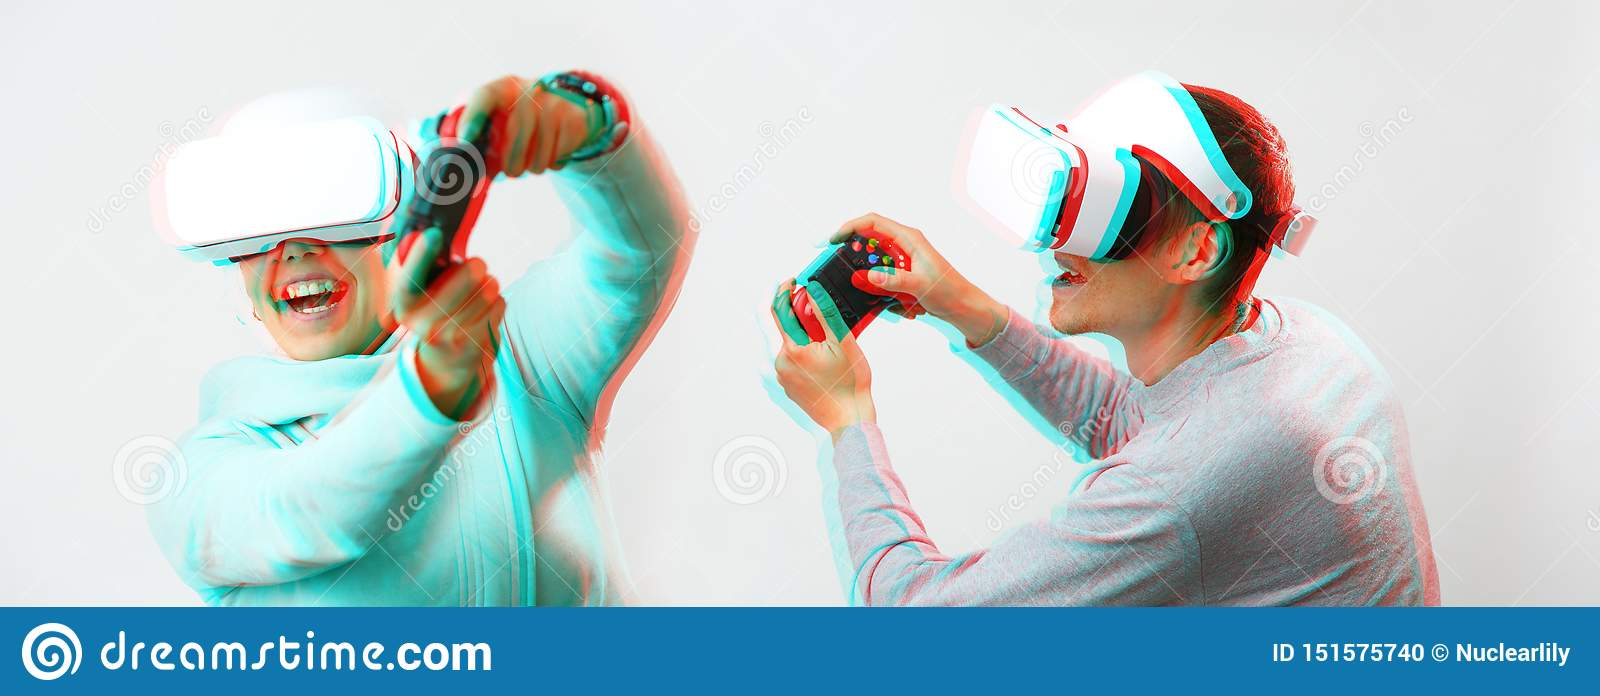 Man and woman with virtual reality headset are playing game. Image with glitch effect.